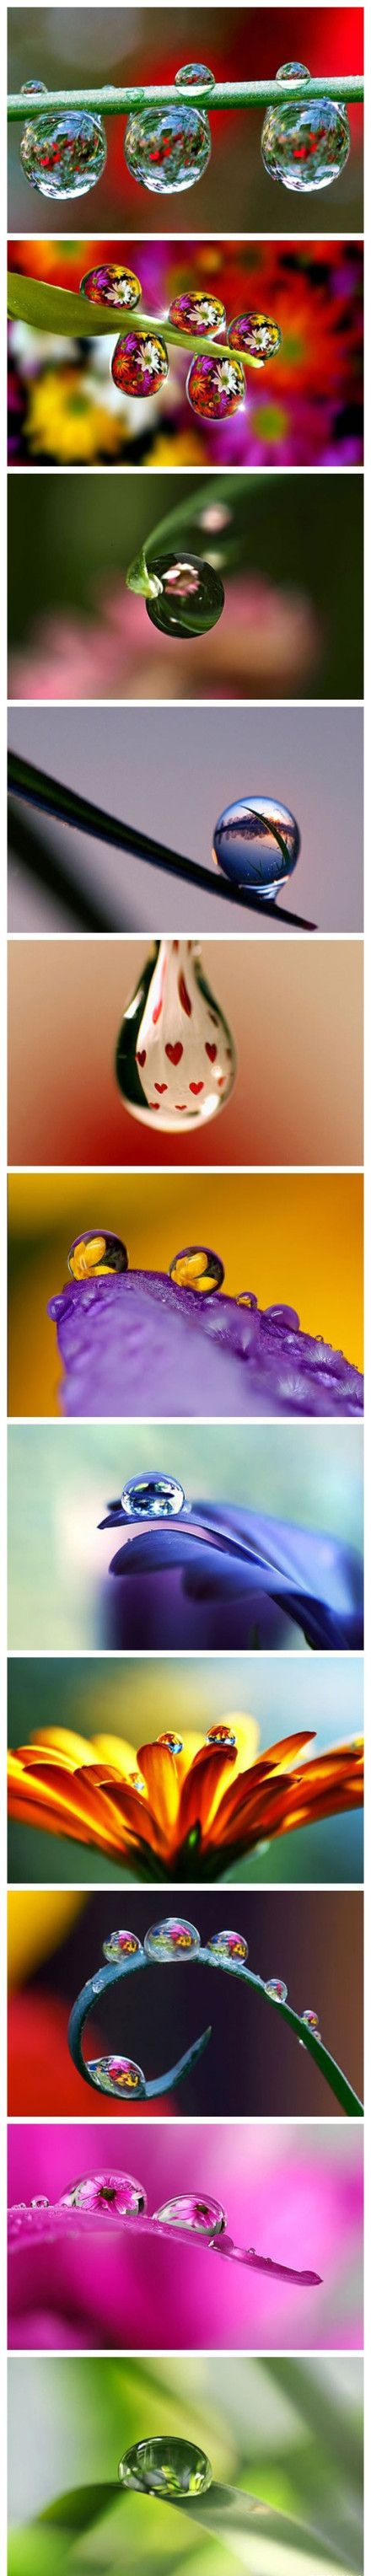 Beauty through the water drops